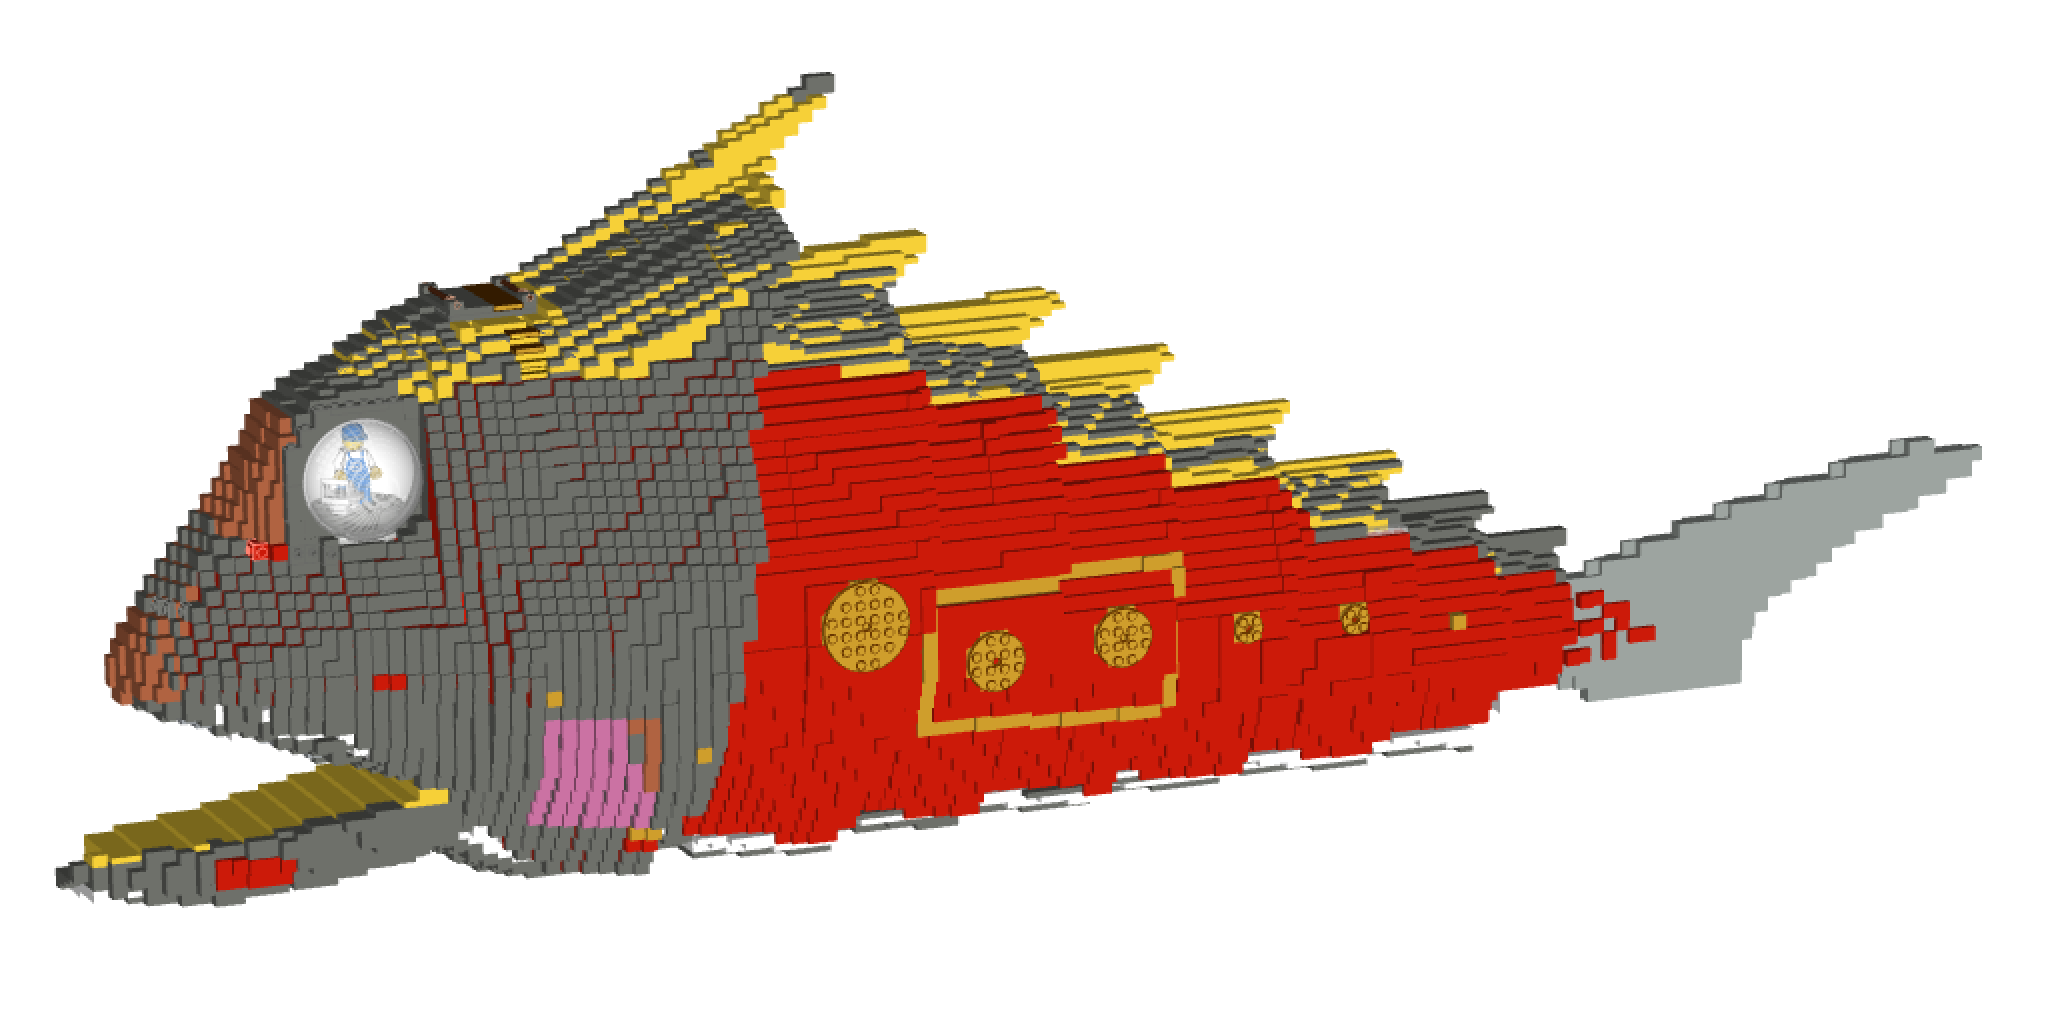 Final ldraw design. False coloured to show the direction of the bricks (up/down/left/right etc)